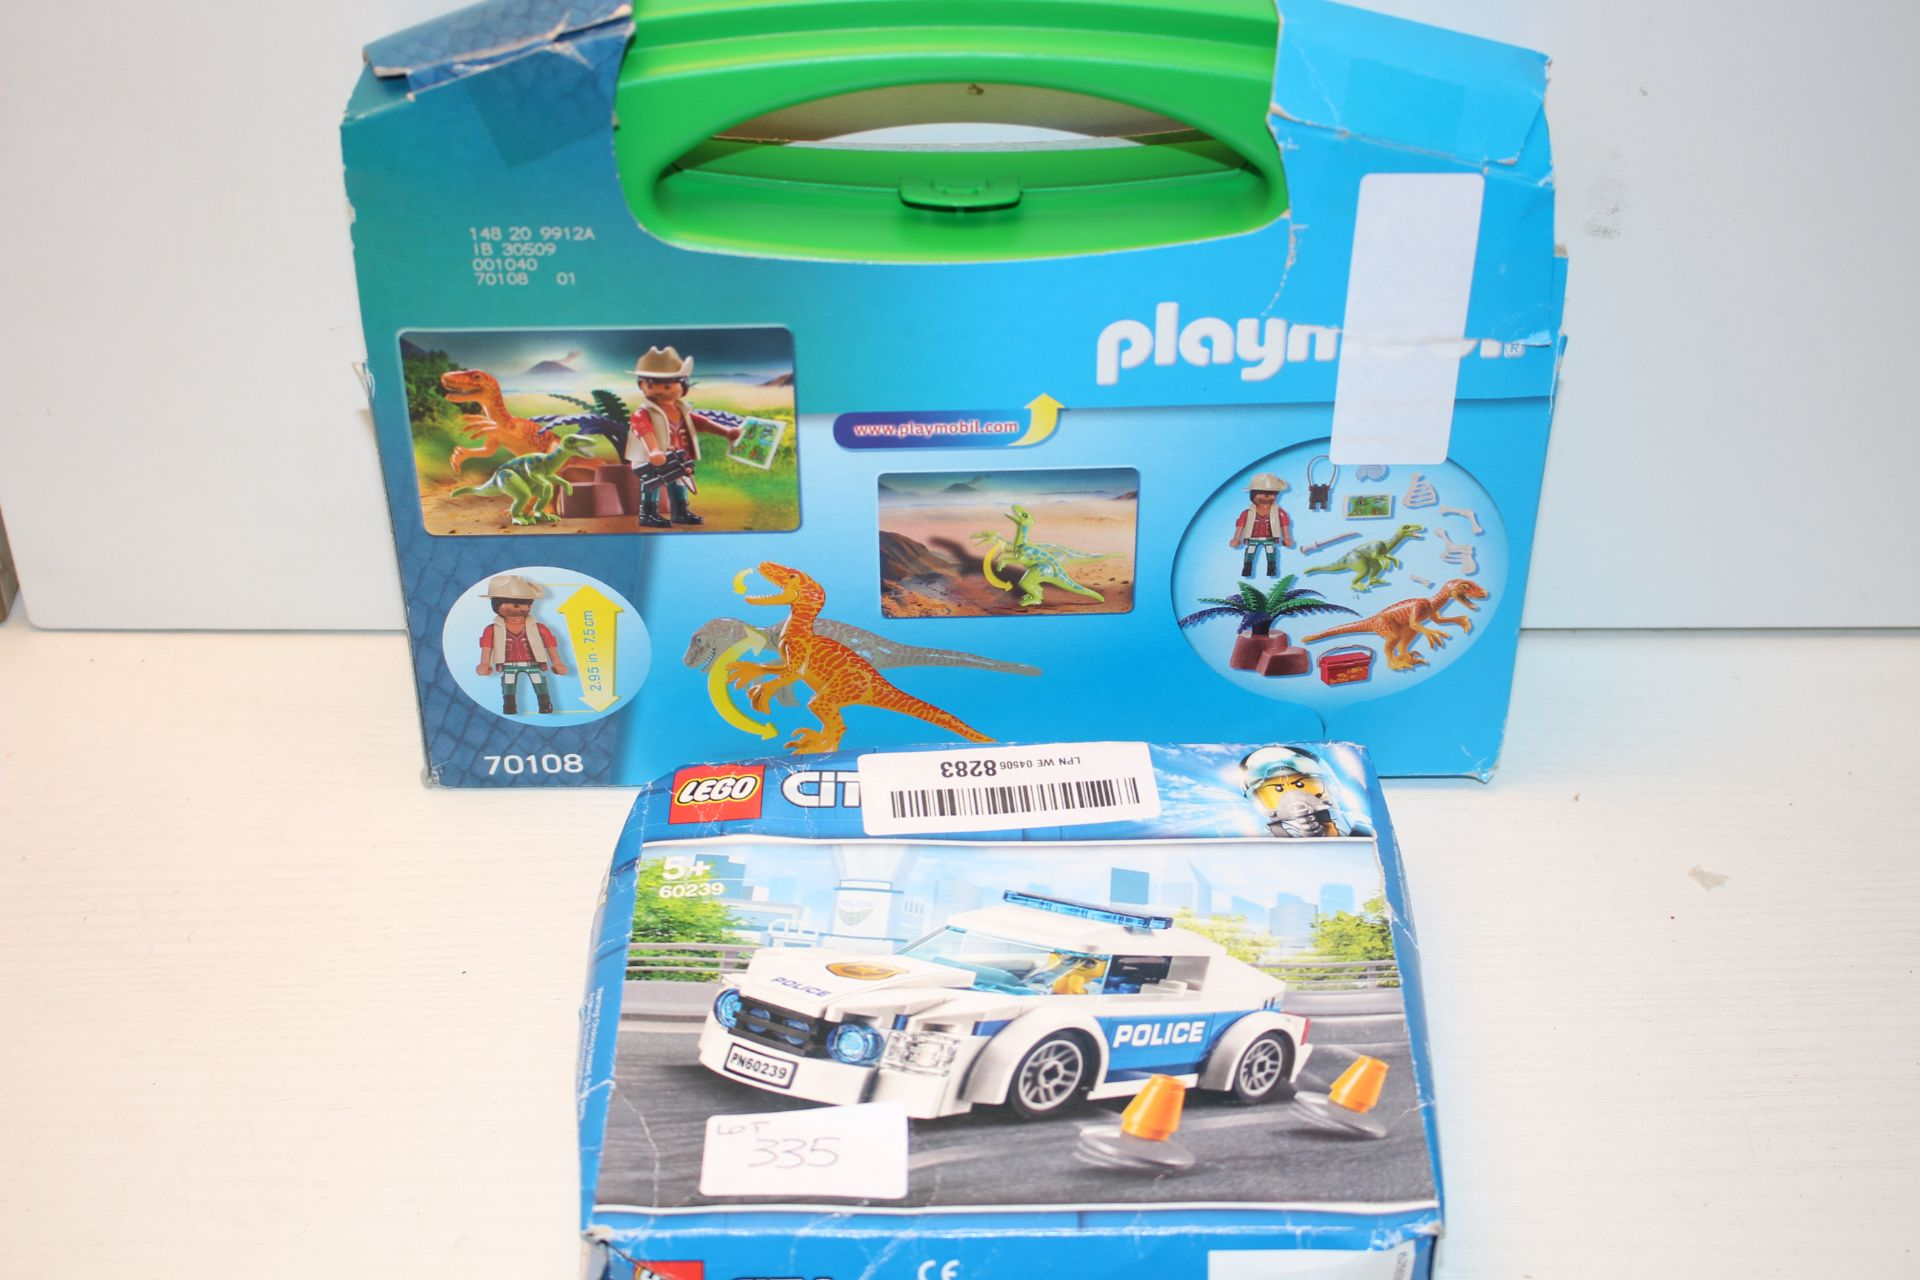 2X BOXED ASSORTED TOYS BY LEGO & PLAYMOBILCondition ReportAppraisal Available on Request- All